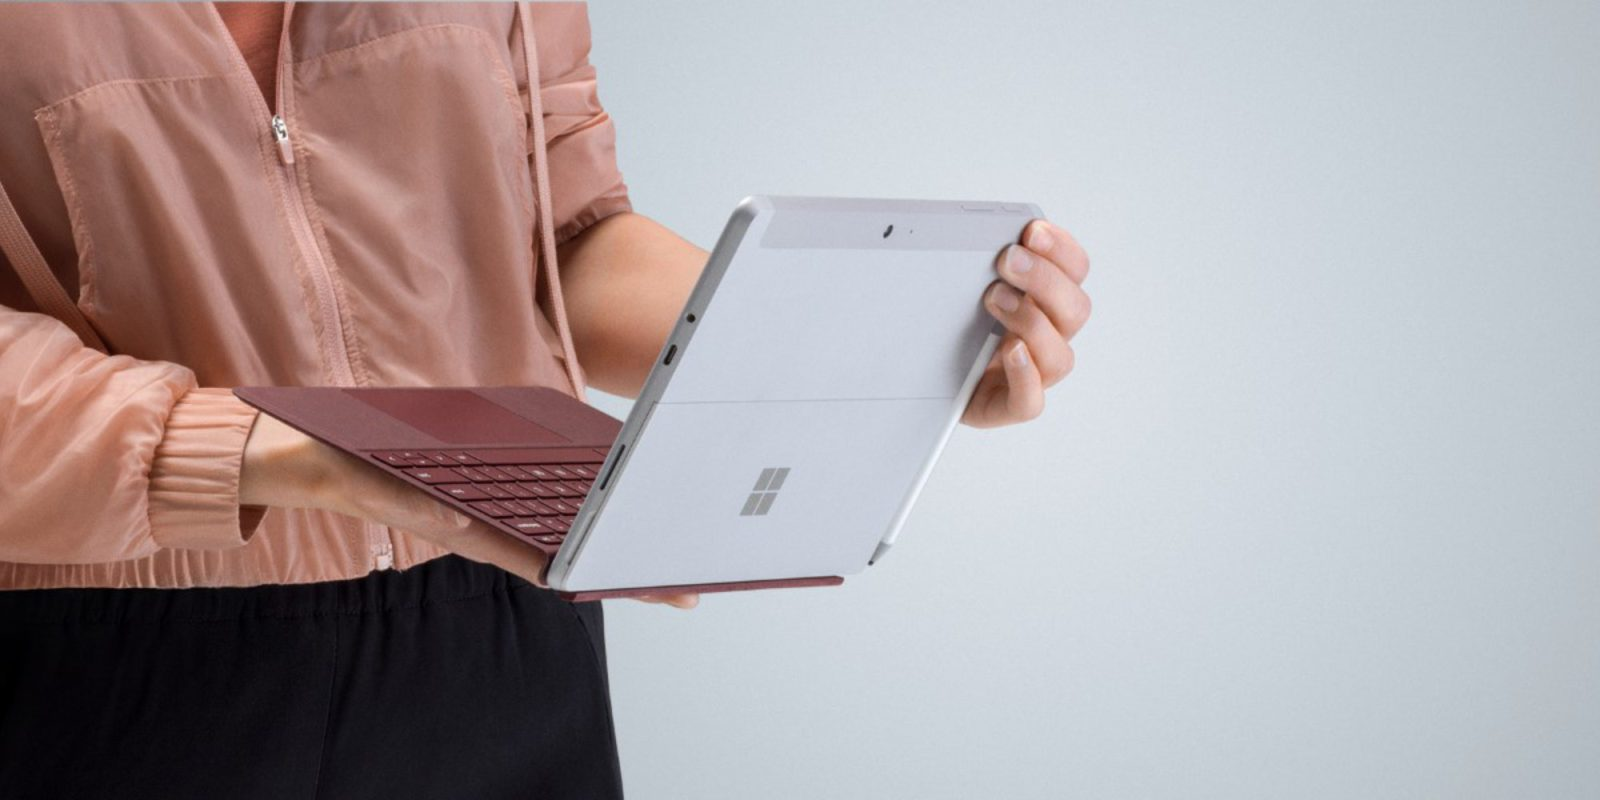 Microsoft Surface Go is a full-blown, extremely portable PC: $339 (Reg. $400)